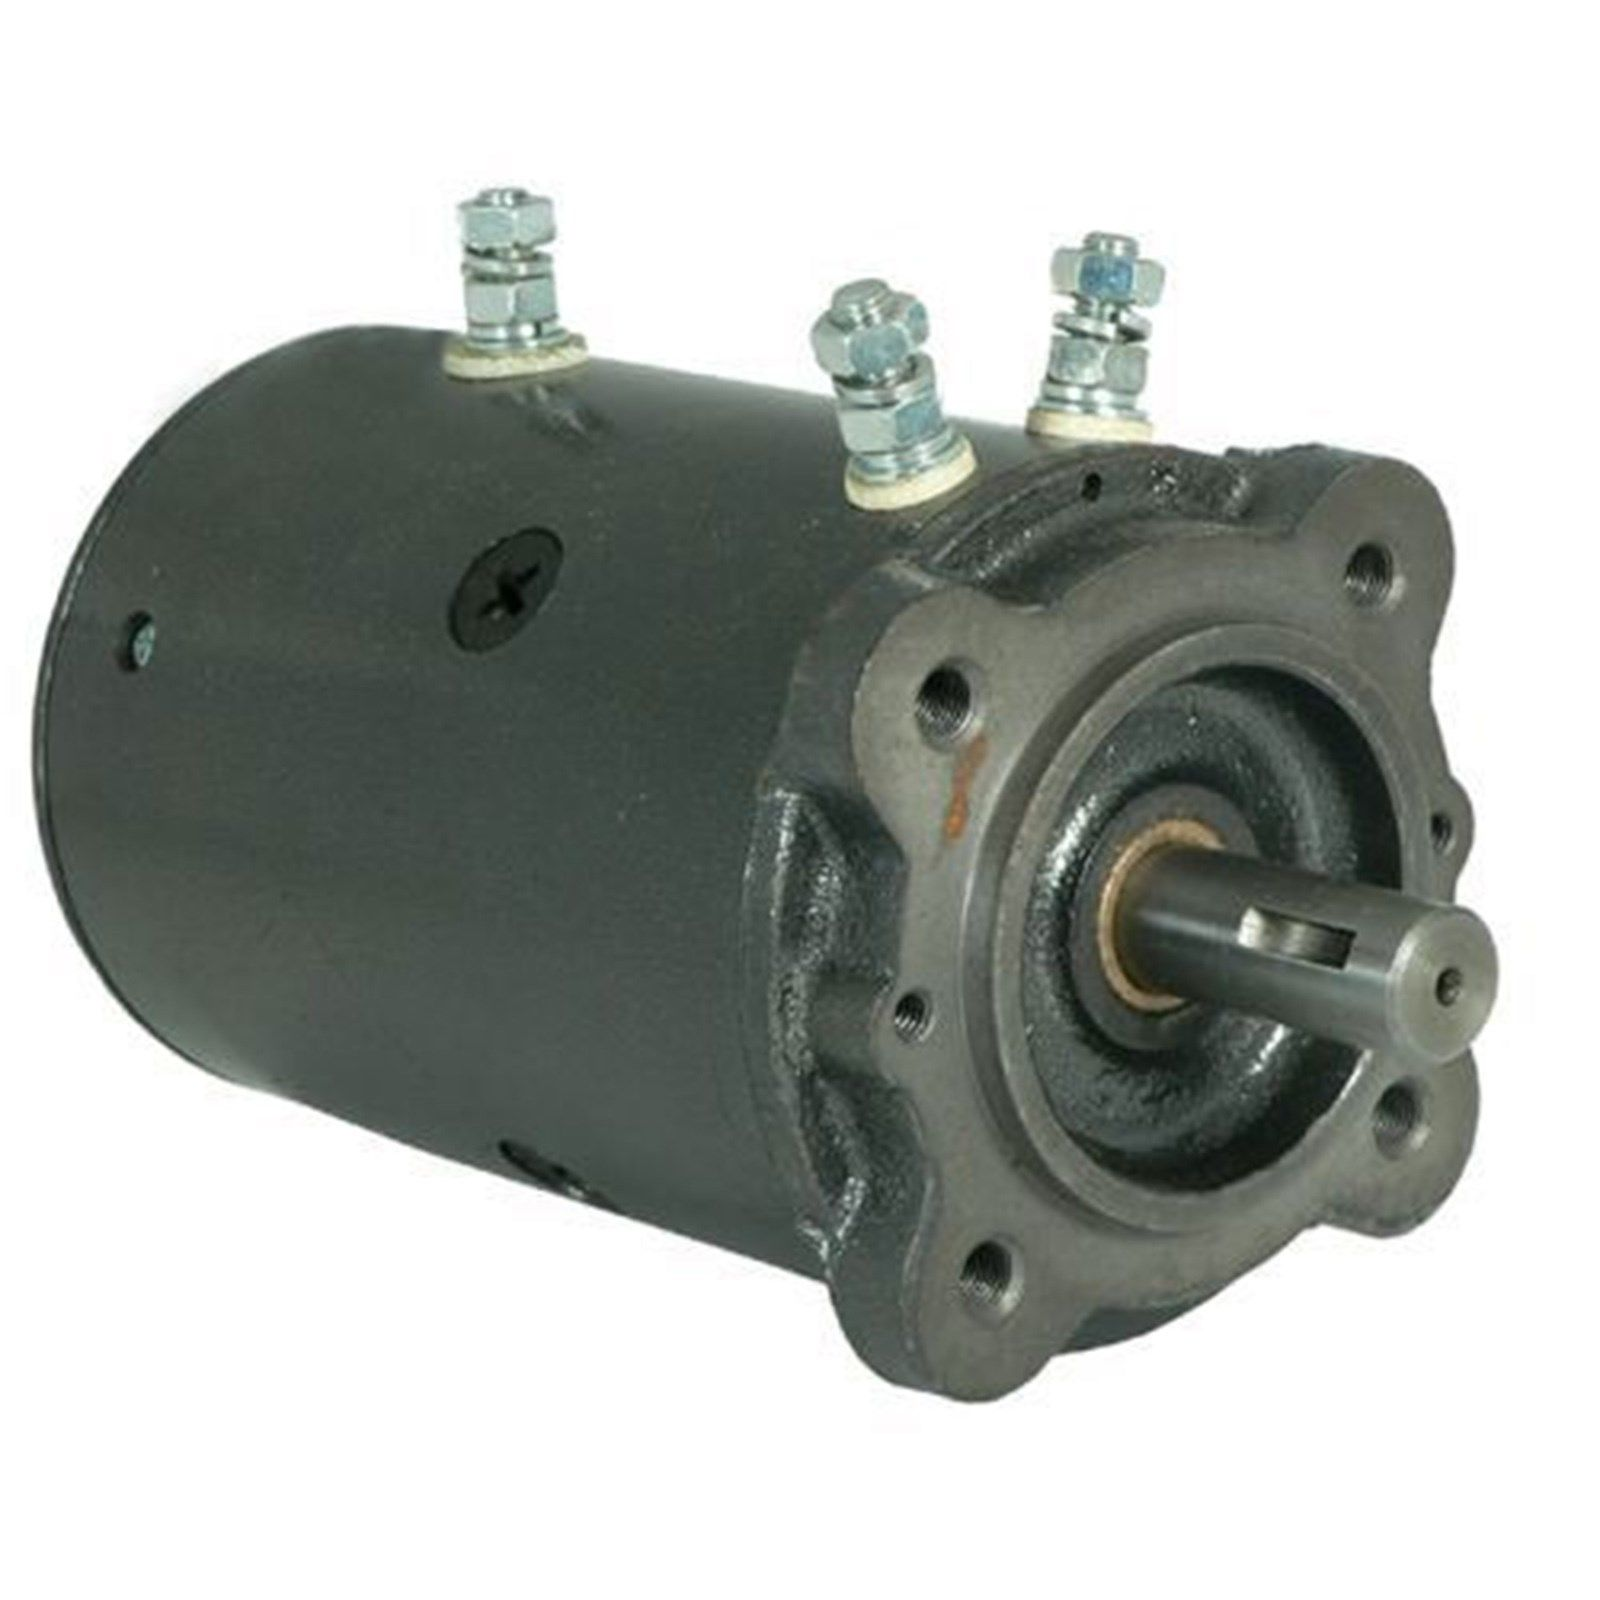 Details about WINCH MOTOR 24V RAMSEY WINCH 458002 458005 MMD4001 MMD4401 on